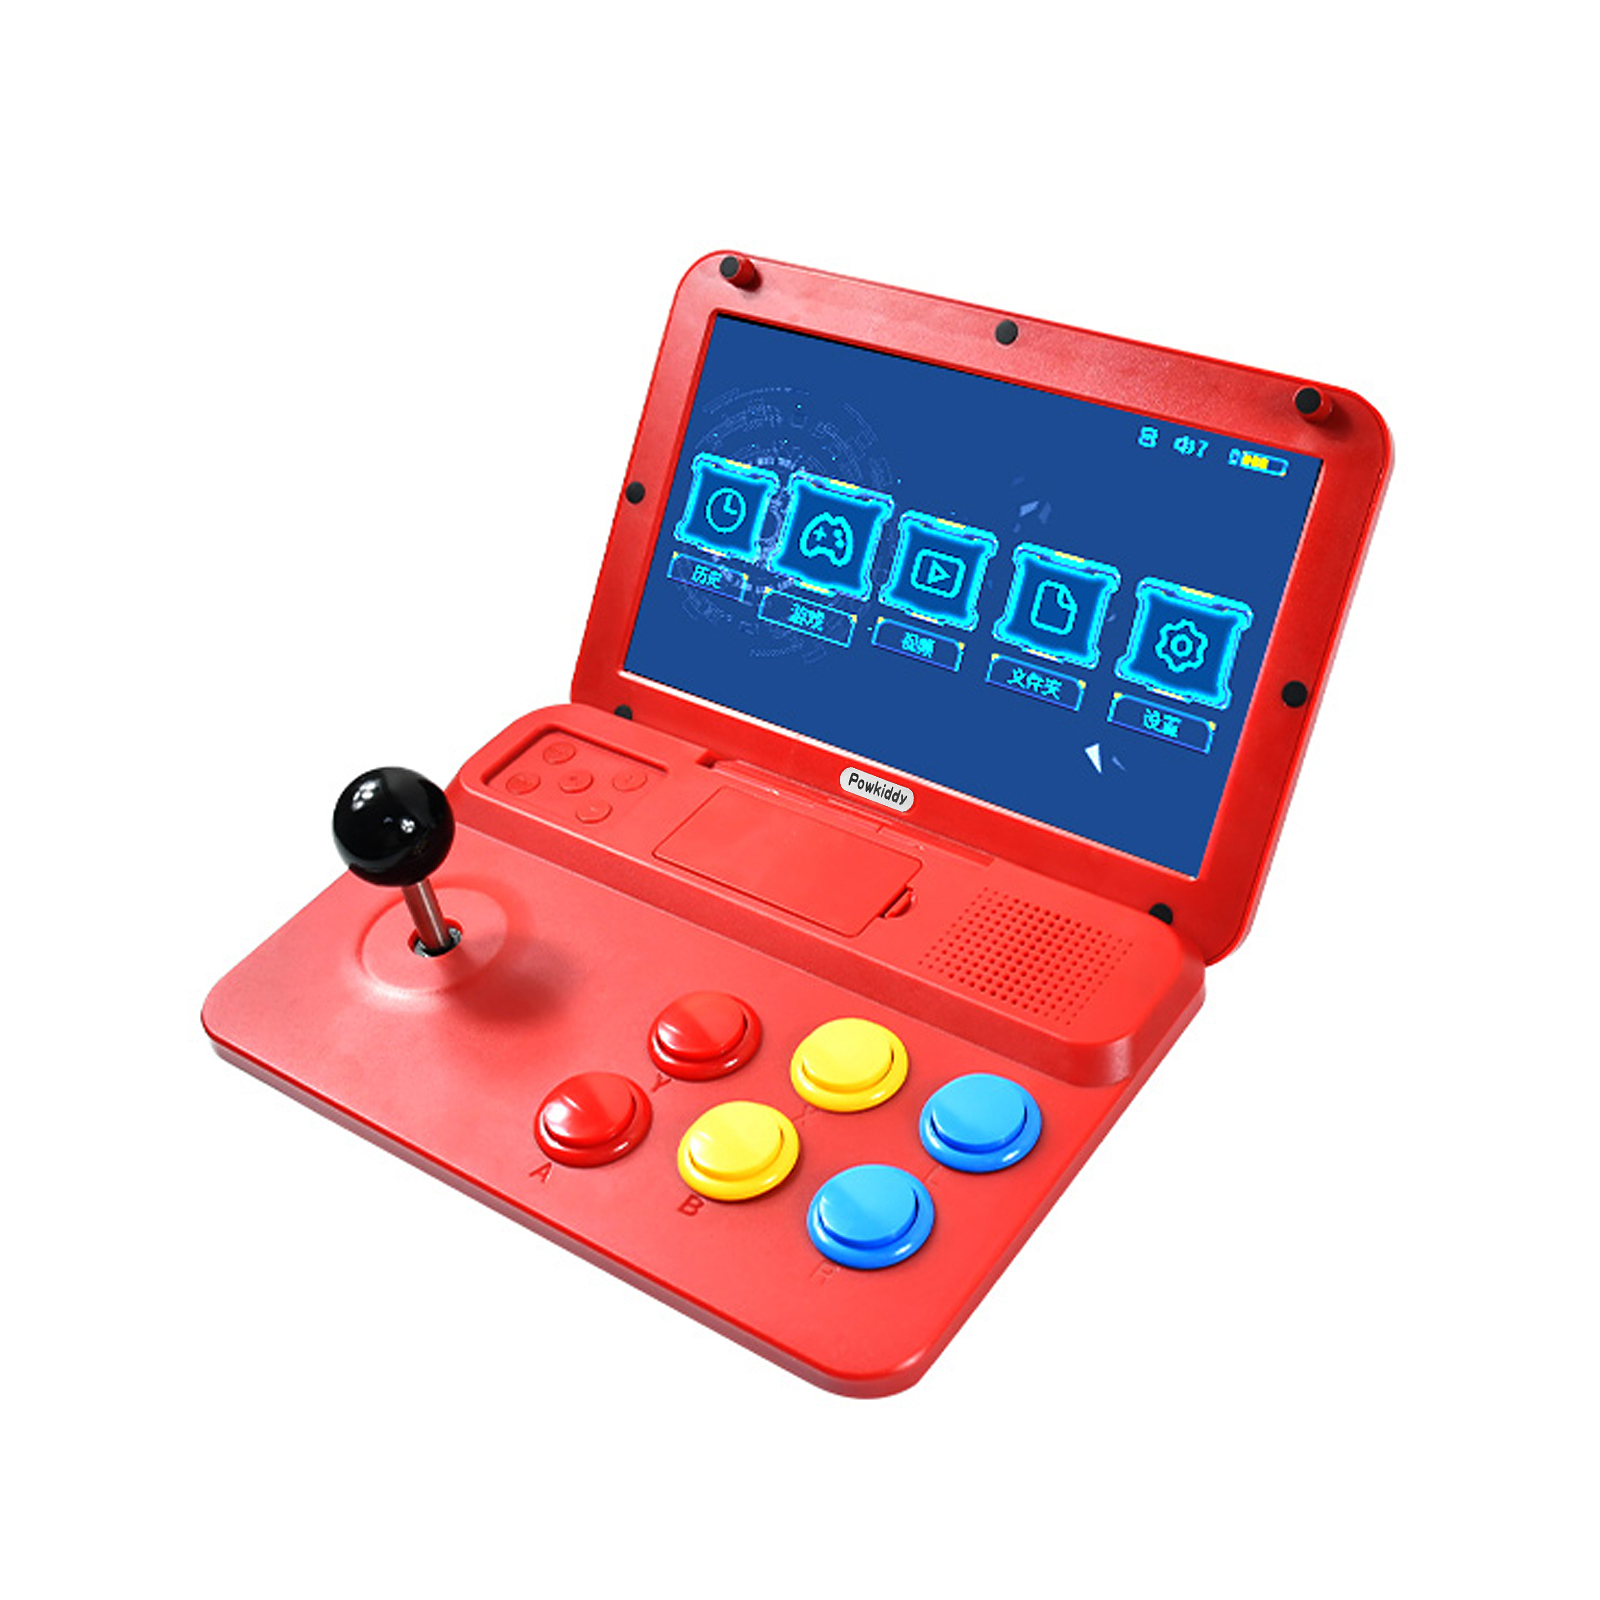 Powkiddy A13 Video Game Console Handheld Game Player Arcade Joystick Built-in 3000 Games 10-inch Screen Support Wired Gamepad